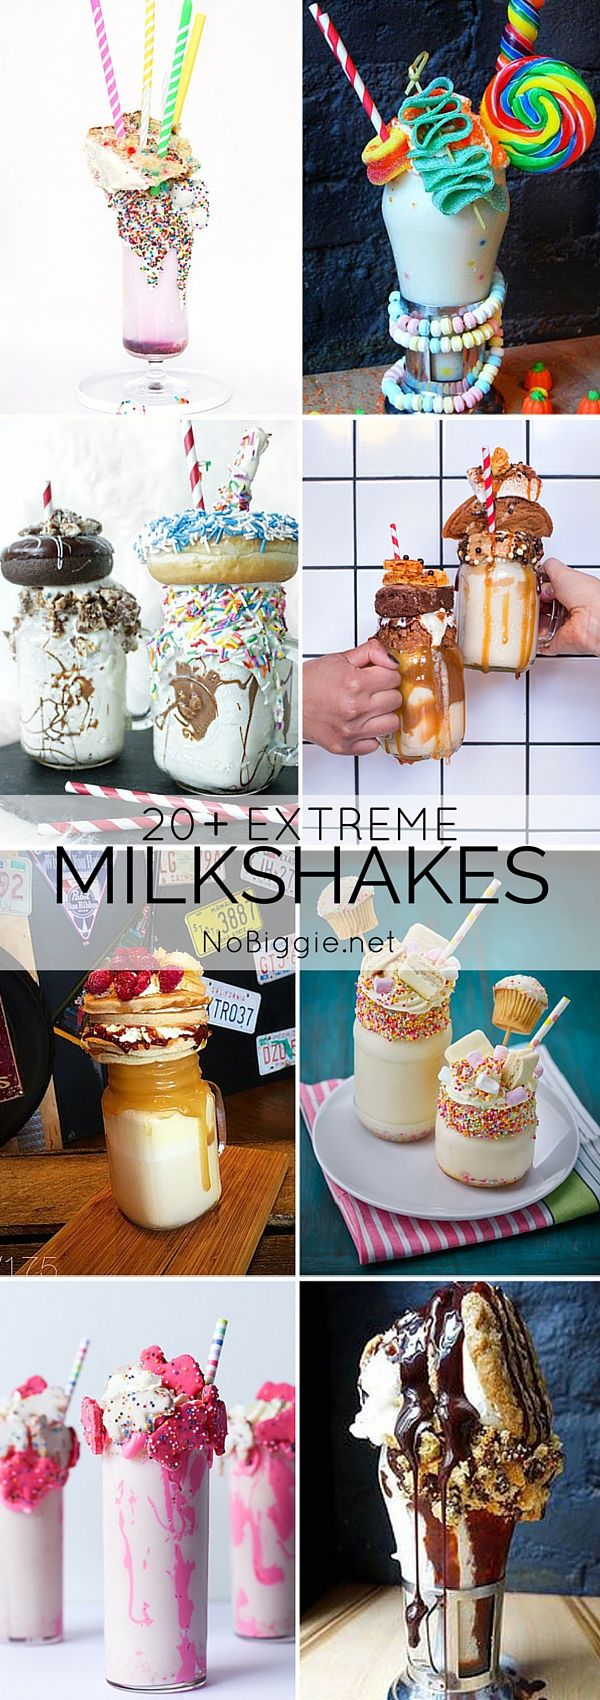 Extreme Milkshakes. Freakshakes. Monster Shakes. It's a trend we are loving.